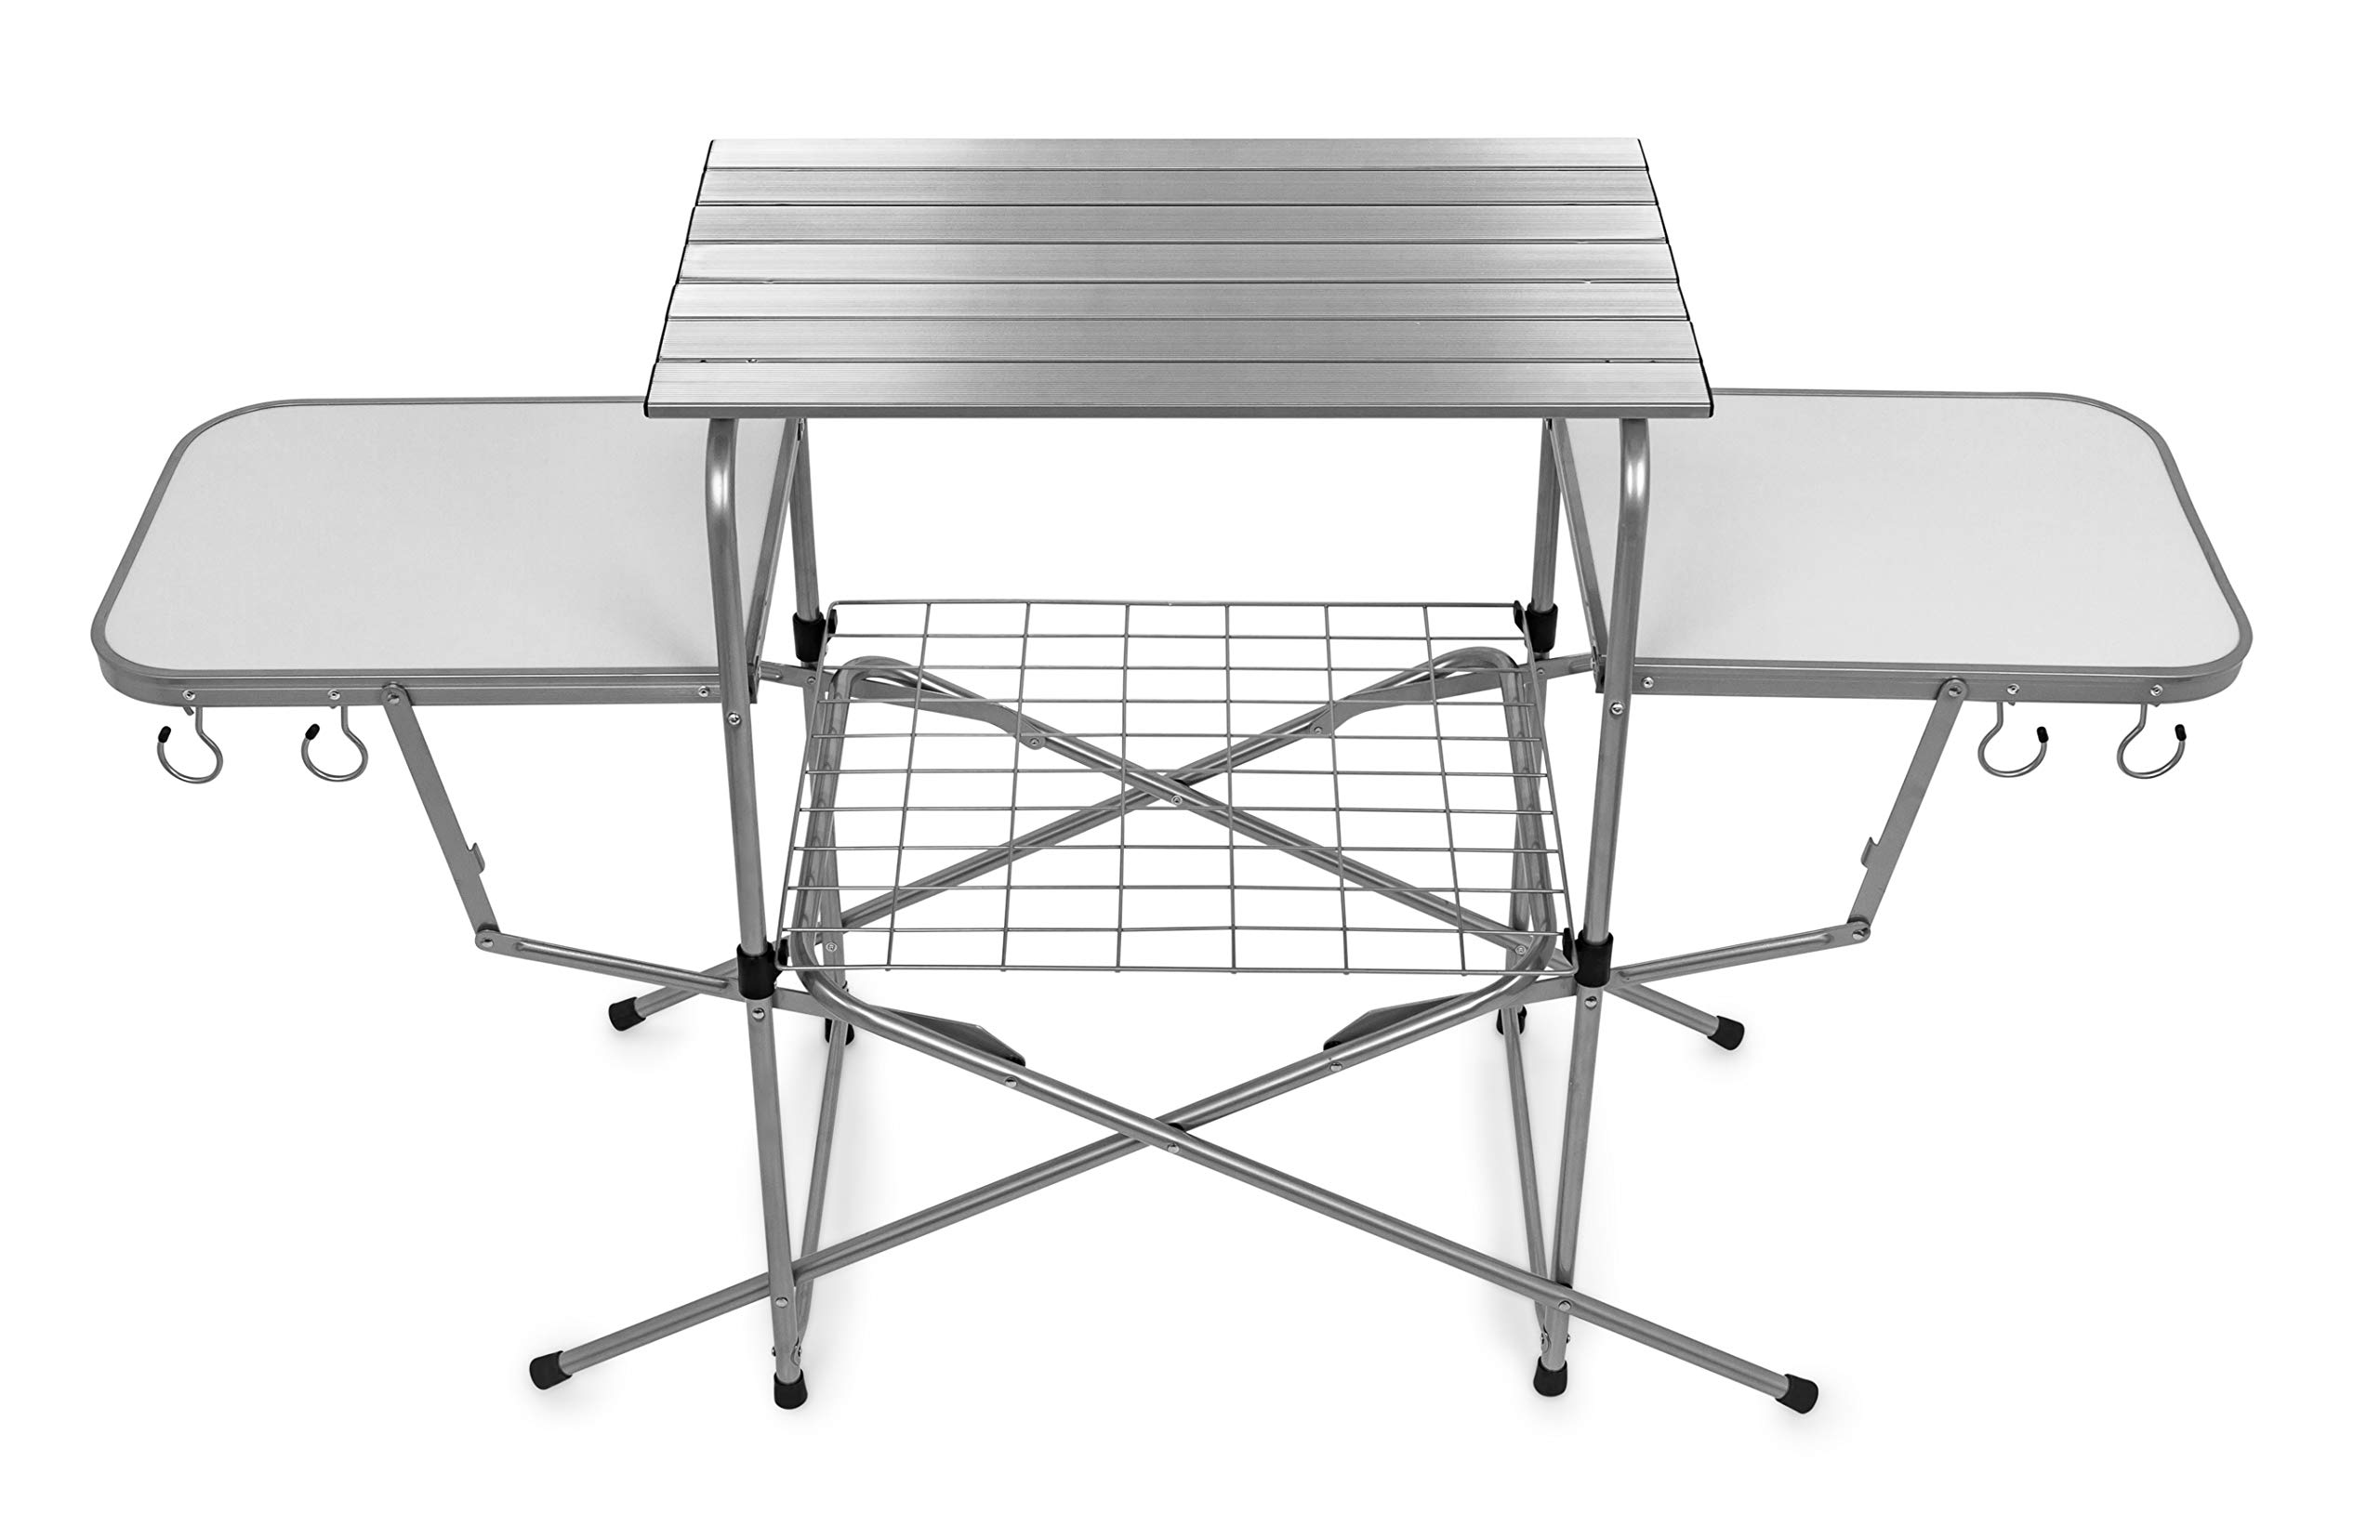 Camco 57293 Deluxe Folding Grill Table by Camco